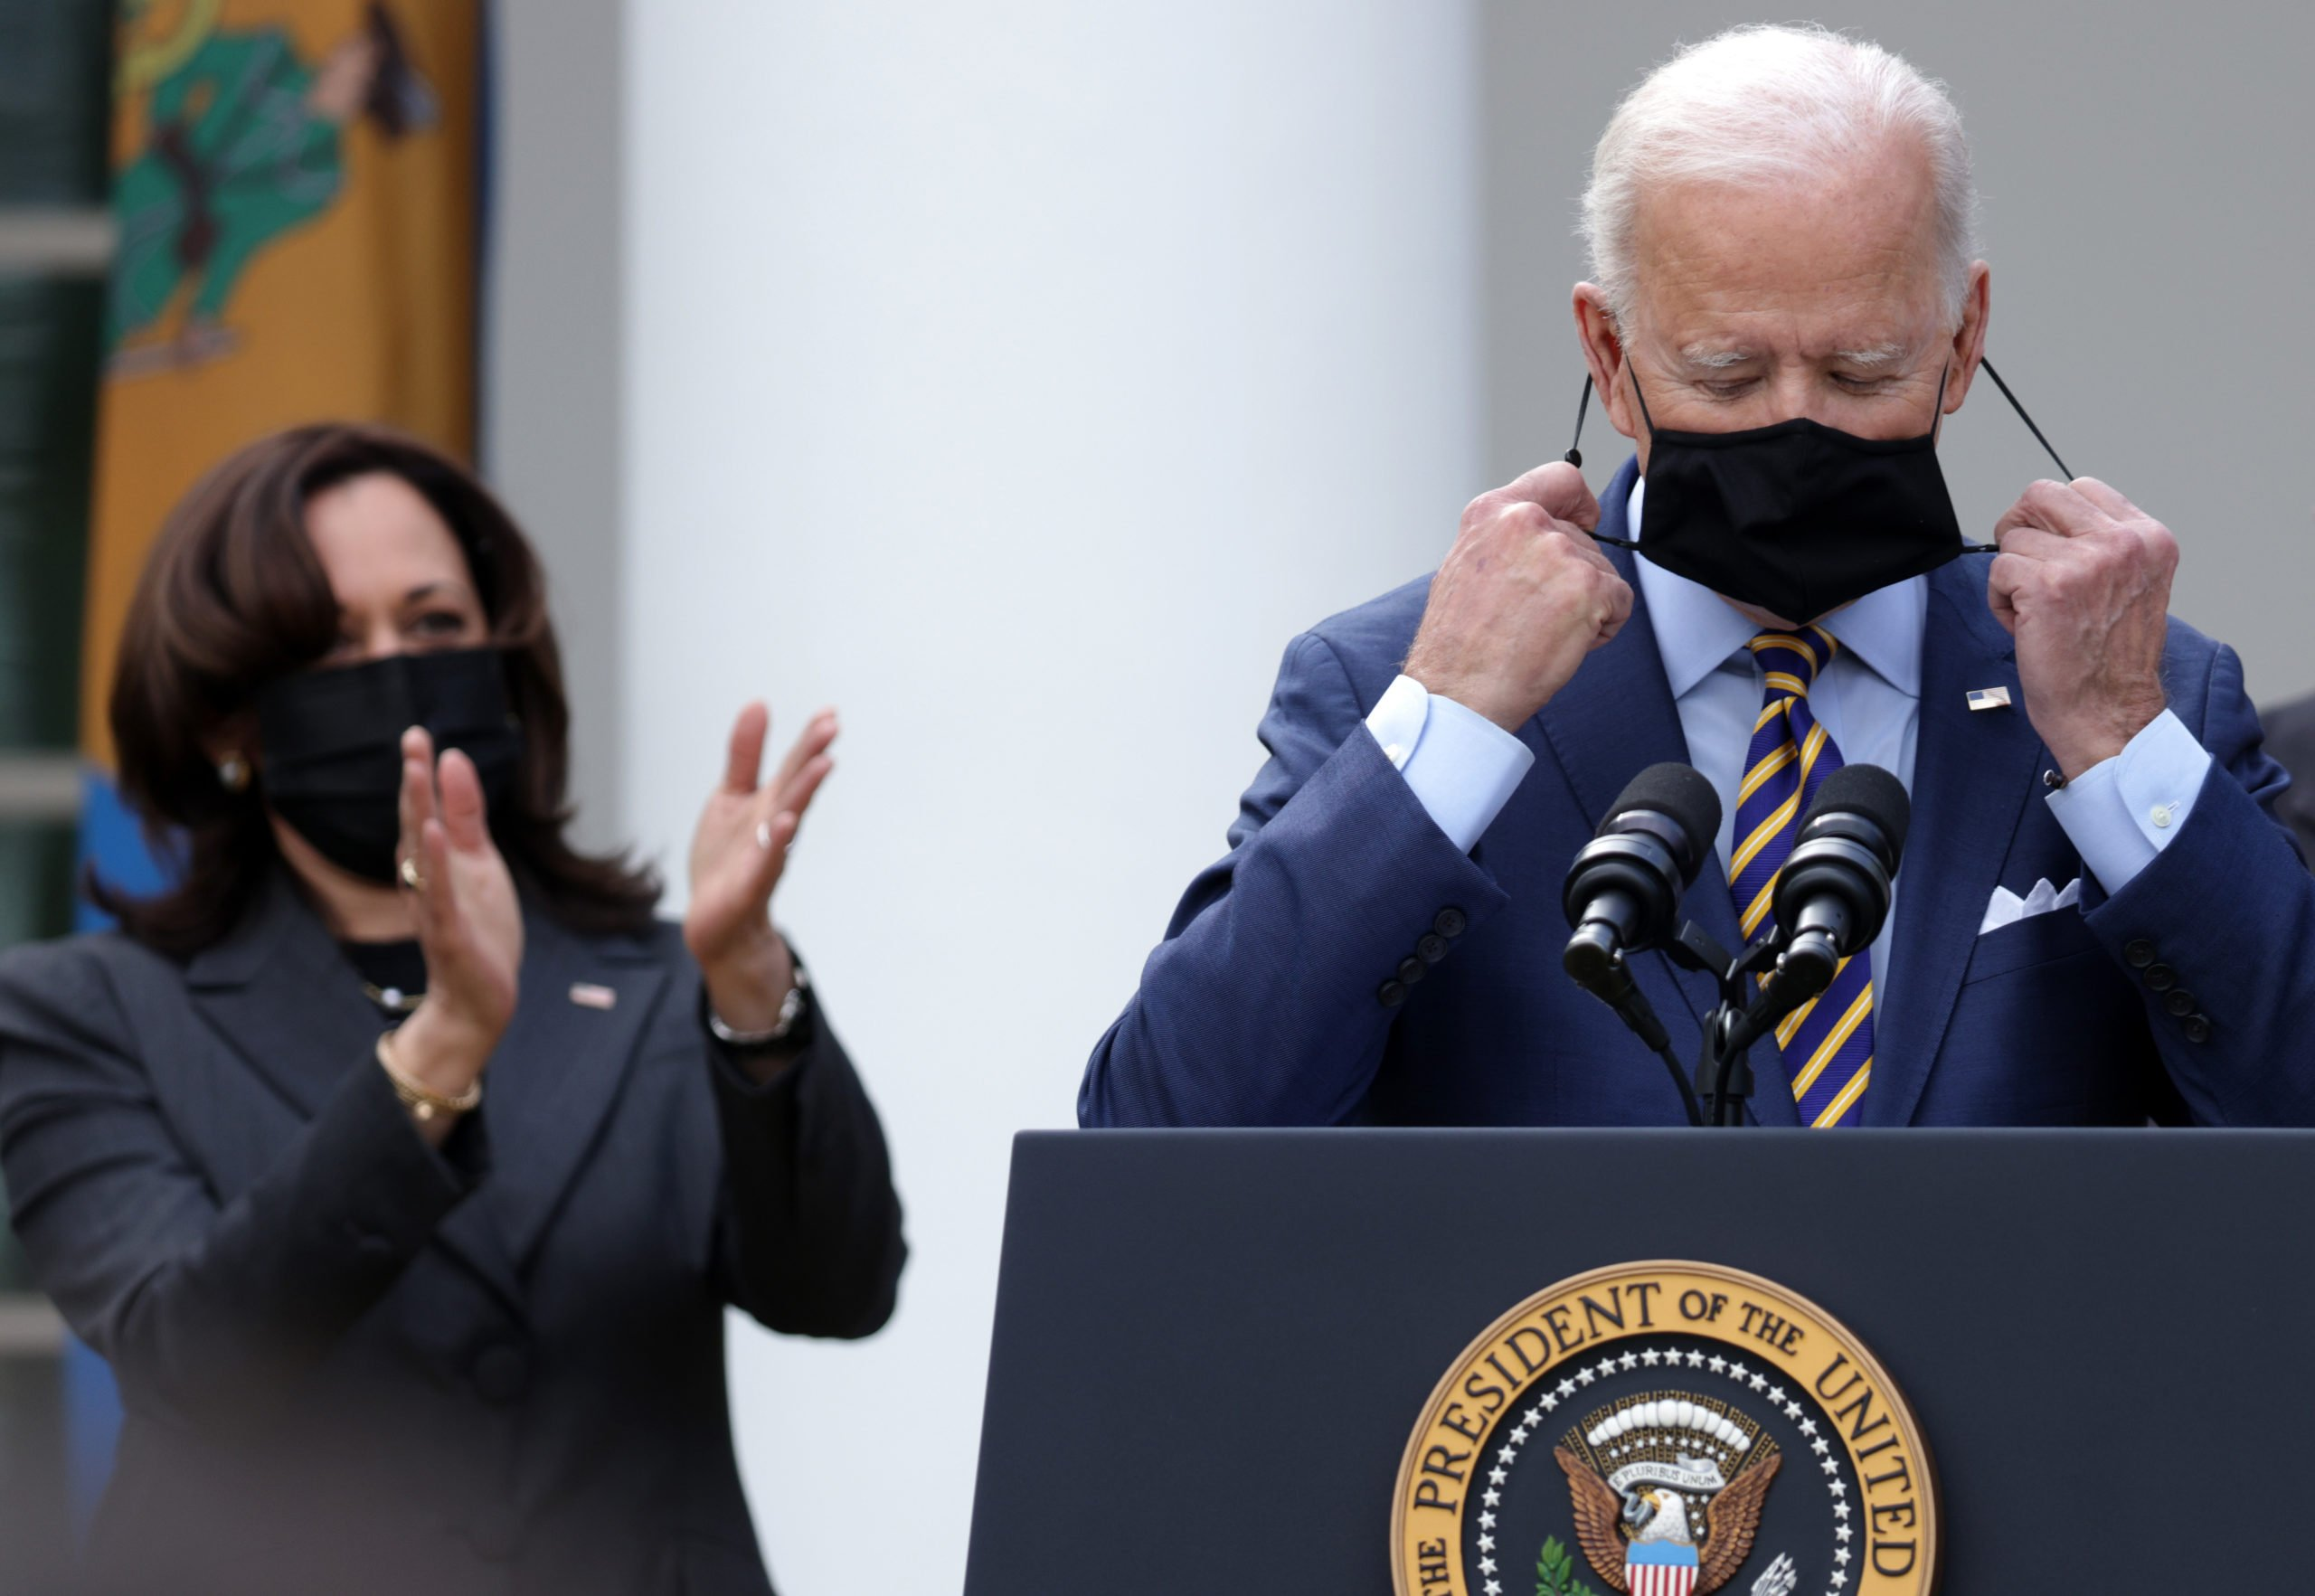 WASHINGTON, DC - MARCH 12: U.S. President Joe Biden (R) takes off his mask as Vice President Kamala Harris (L) looks on during an event on the American Rescue Plan in the Rose Garden of the White House on March 12, 2021 in Washington, DC. President Biden signed the $1.9 trillion American Rescue Plan Act into law that will send aid to millions of Americans struggling from the COVID-19 pandemic. (Photo by Alex Wong/Getty Images)